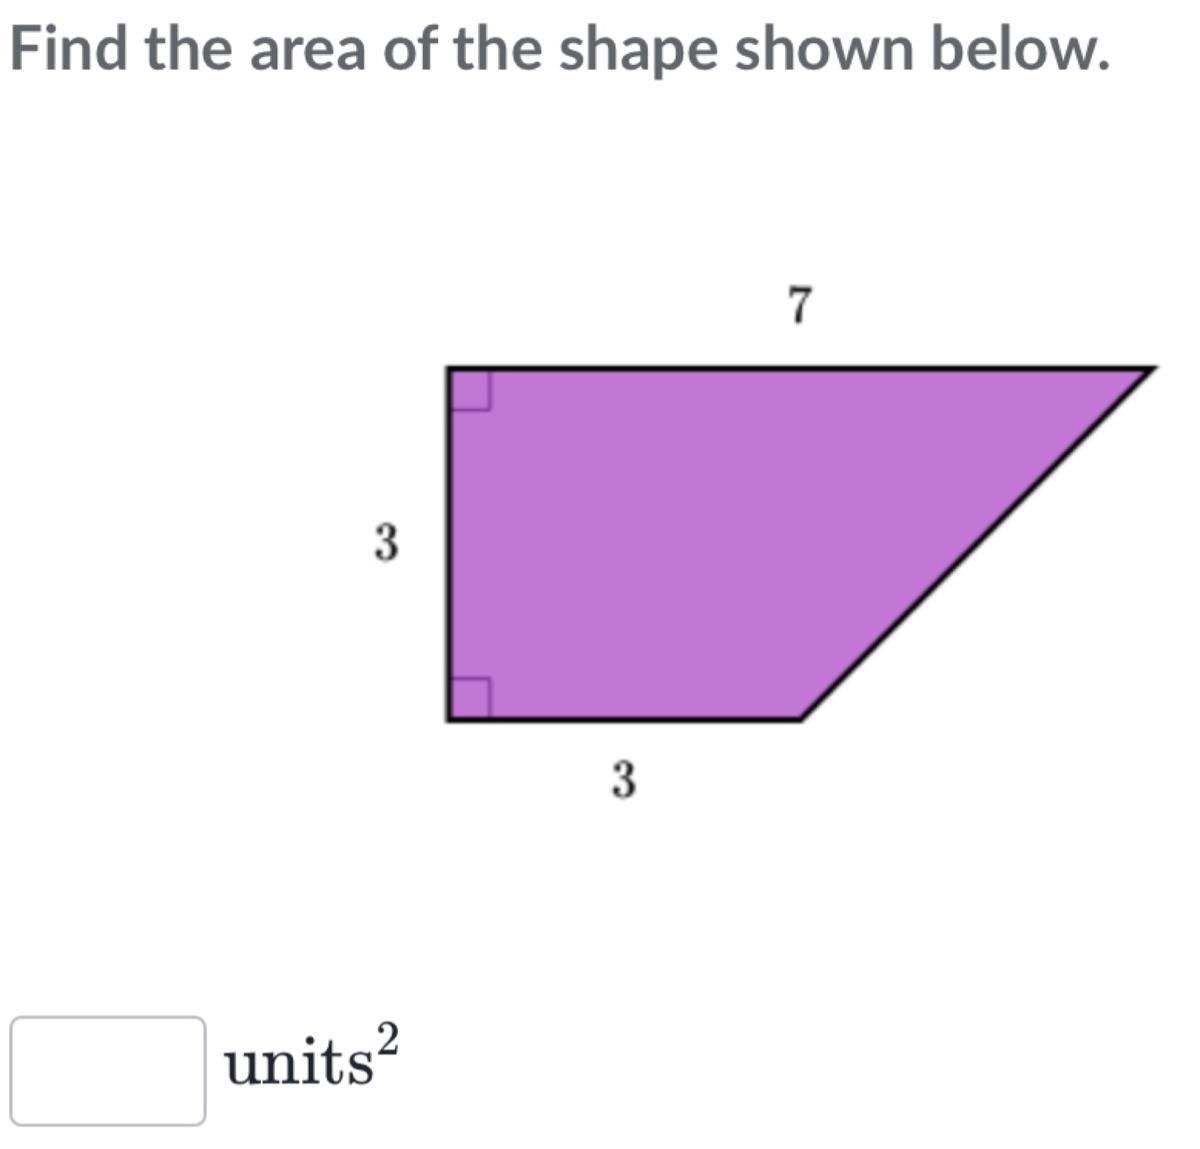 Find the area of the shape shown below. - Brainly.com